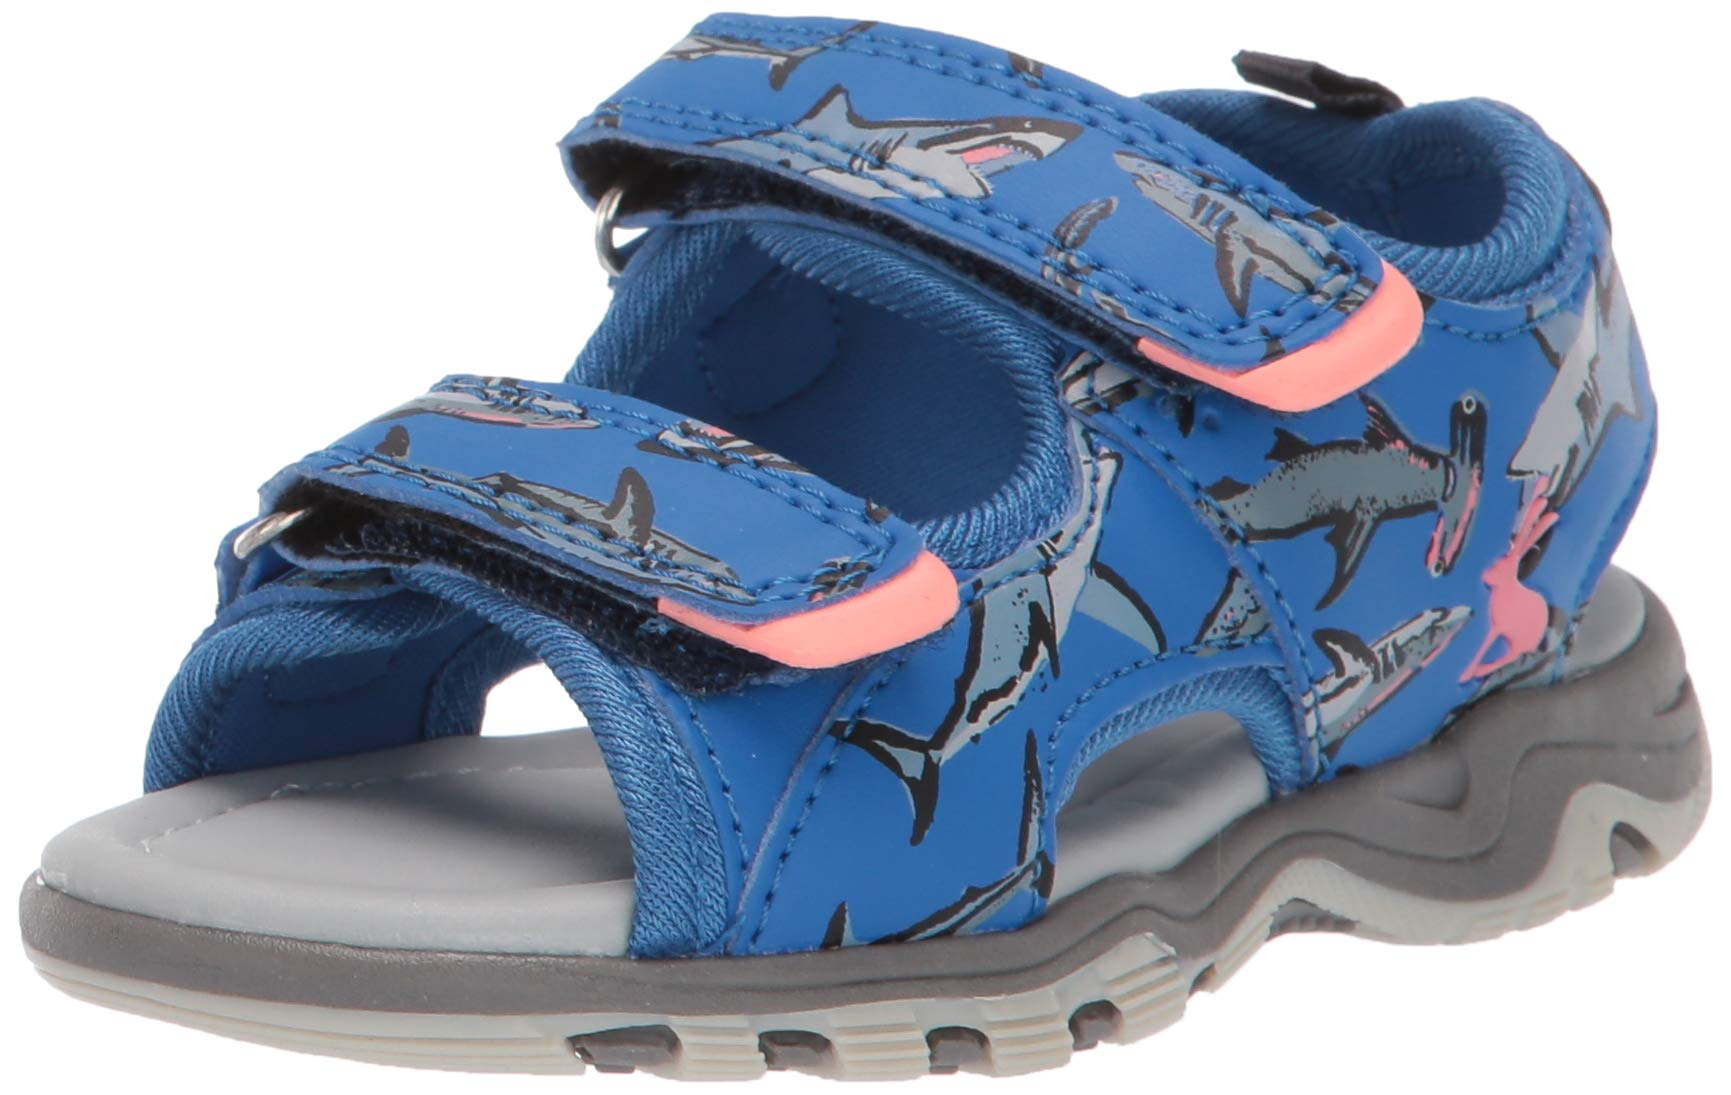 Joules Boys' Rockwell Sport Sandal, Blue Sharks, 12 M US Little Kid